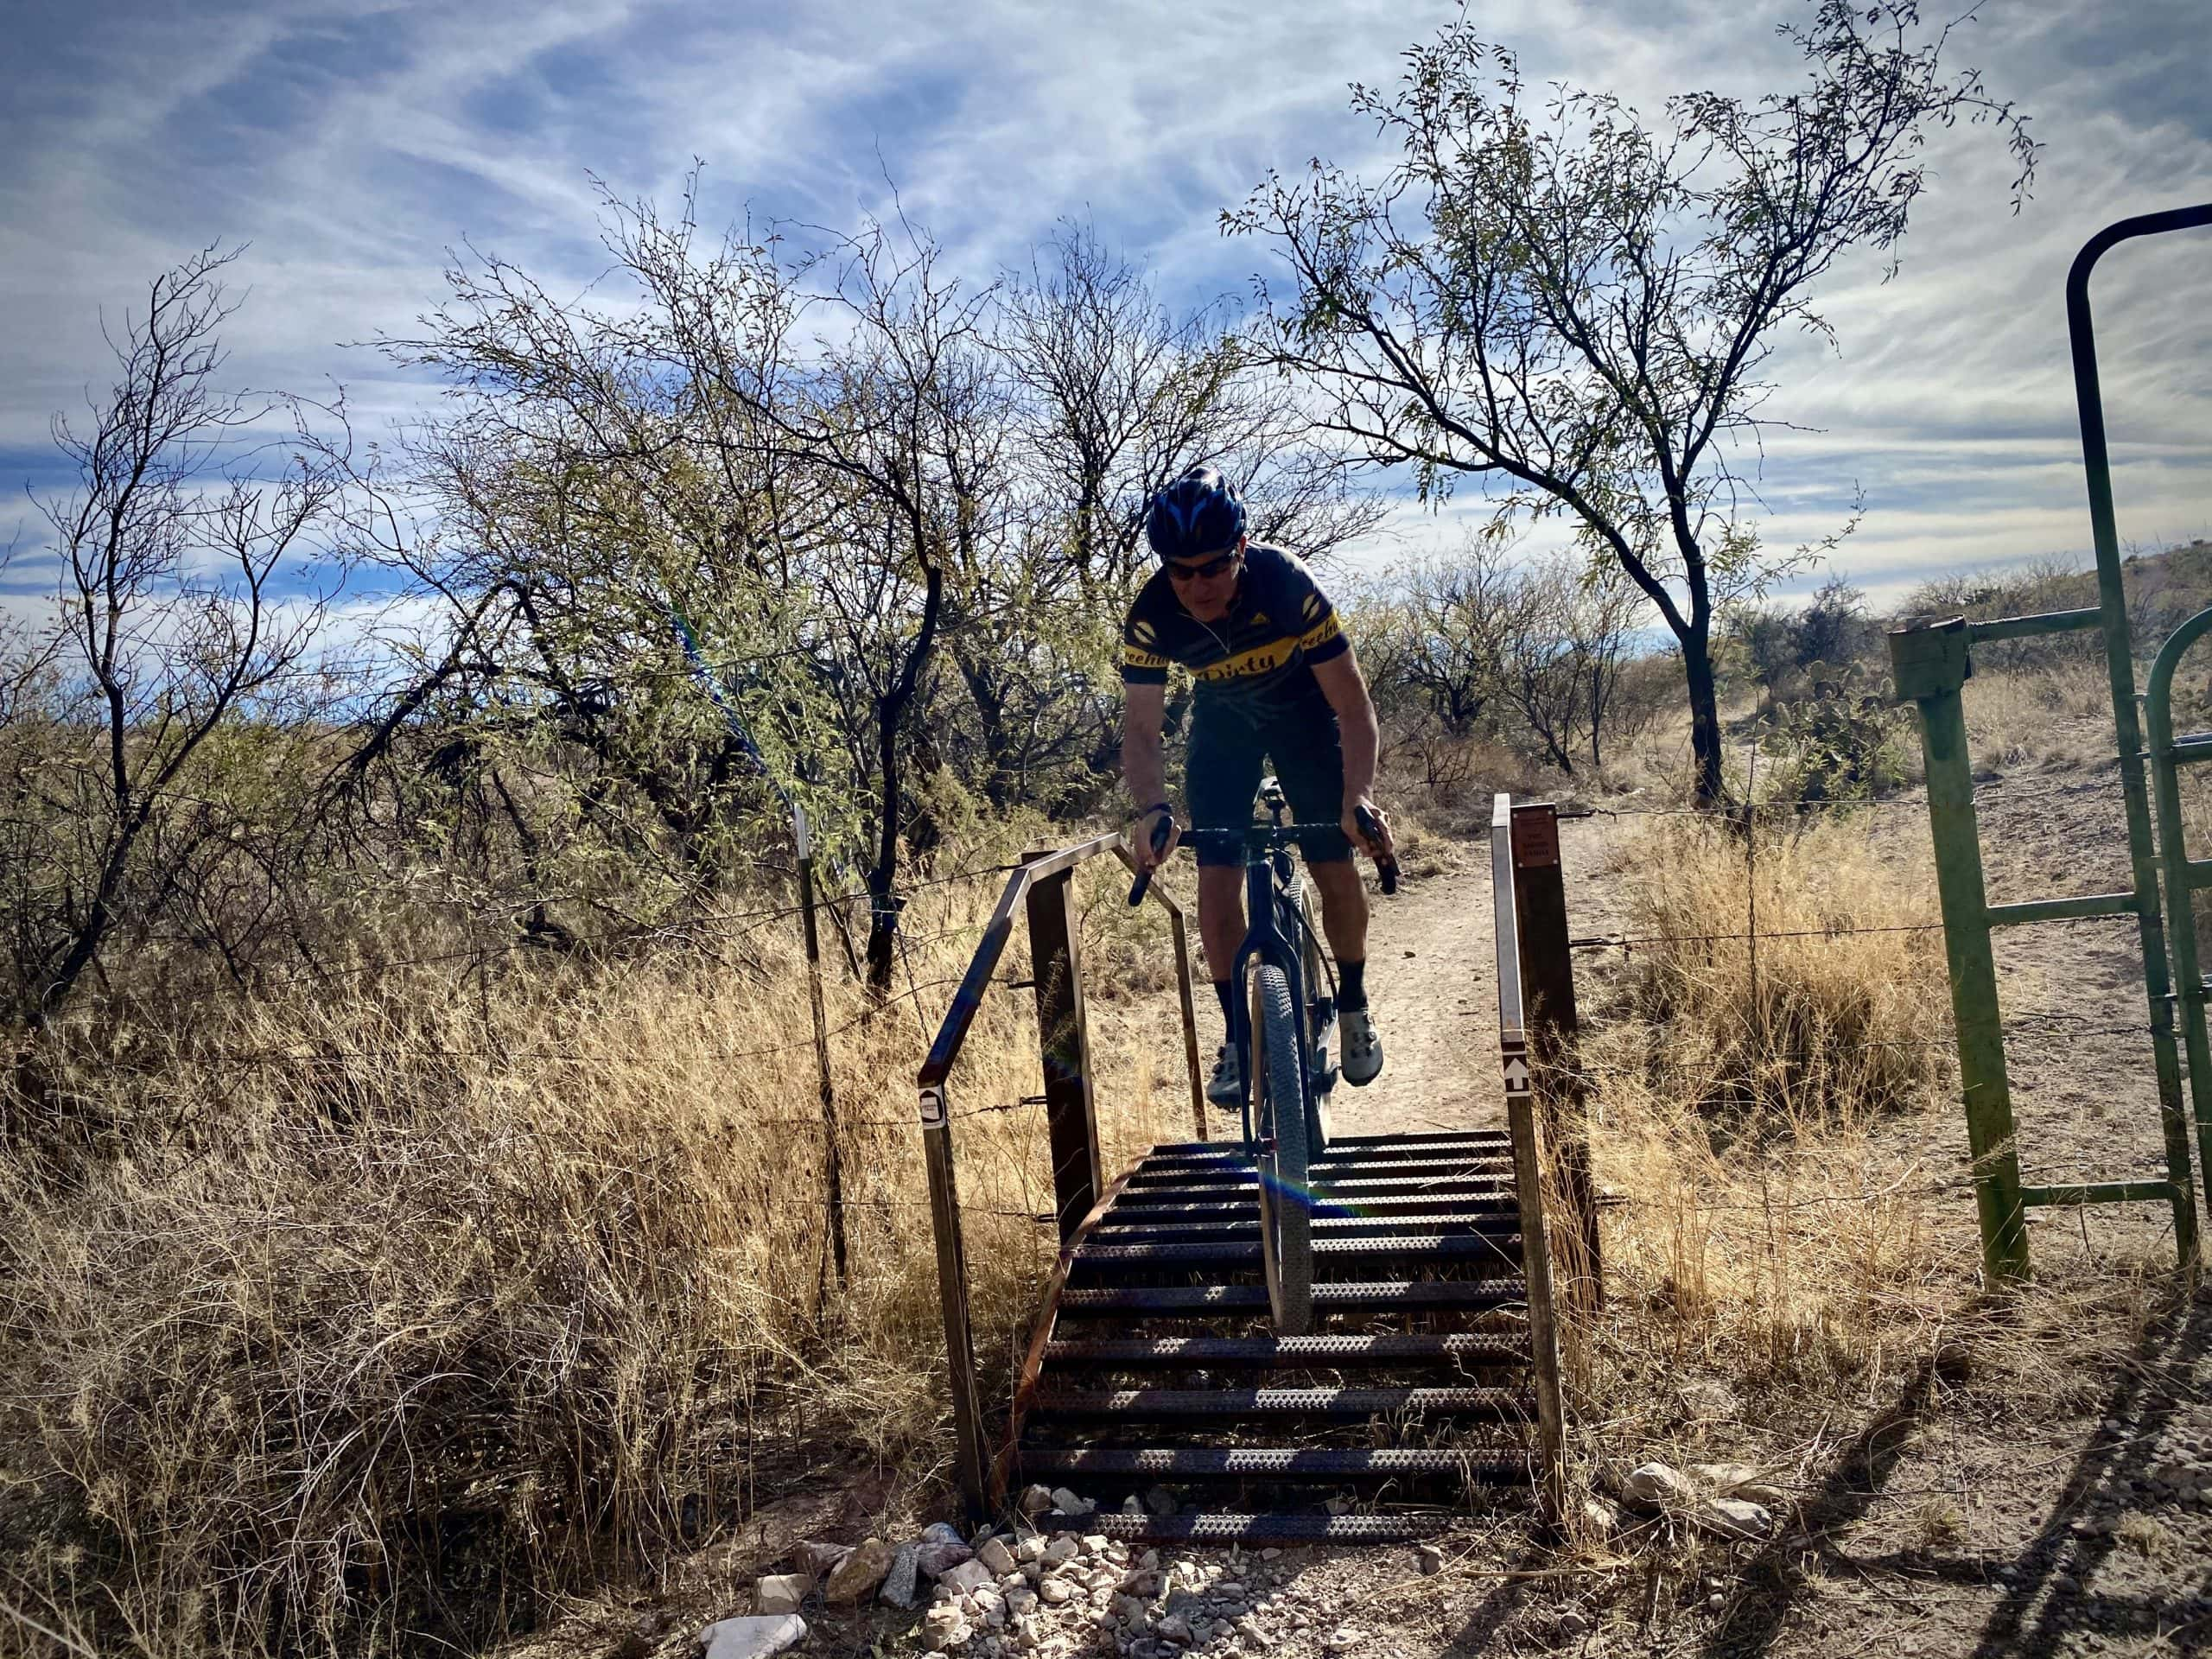 Cyclist passing through cattle fence using an up and over bicycle ladder on the AZT.